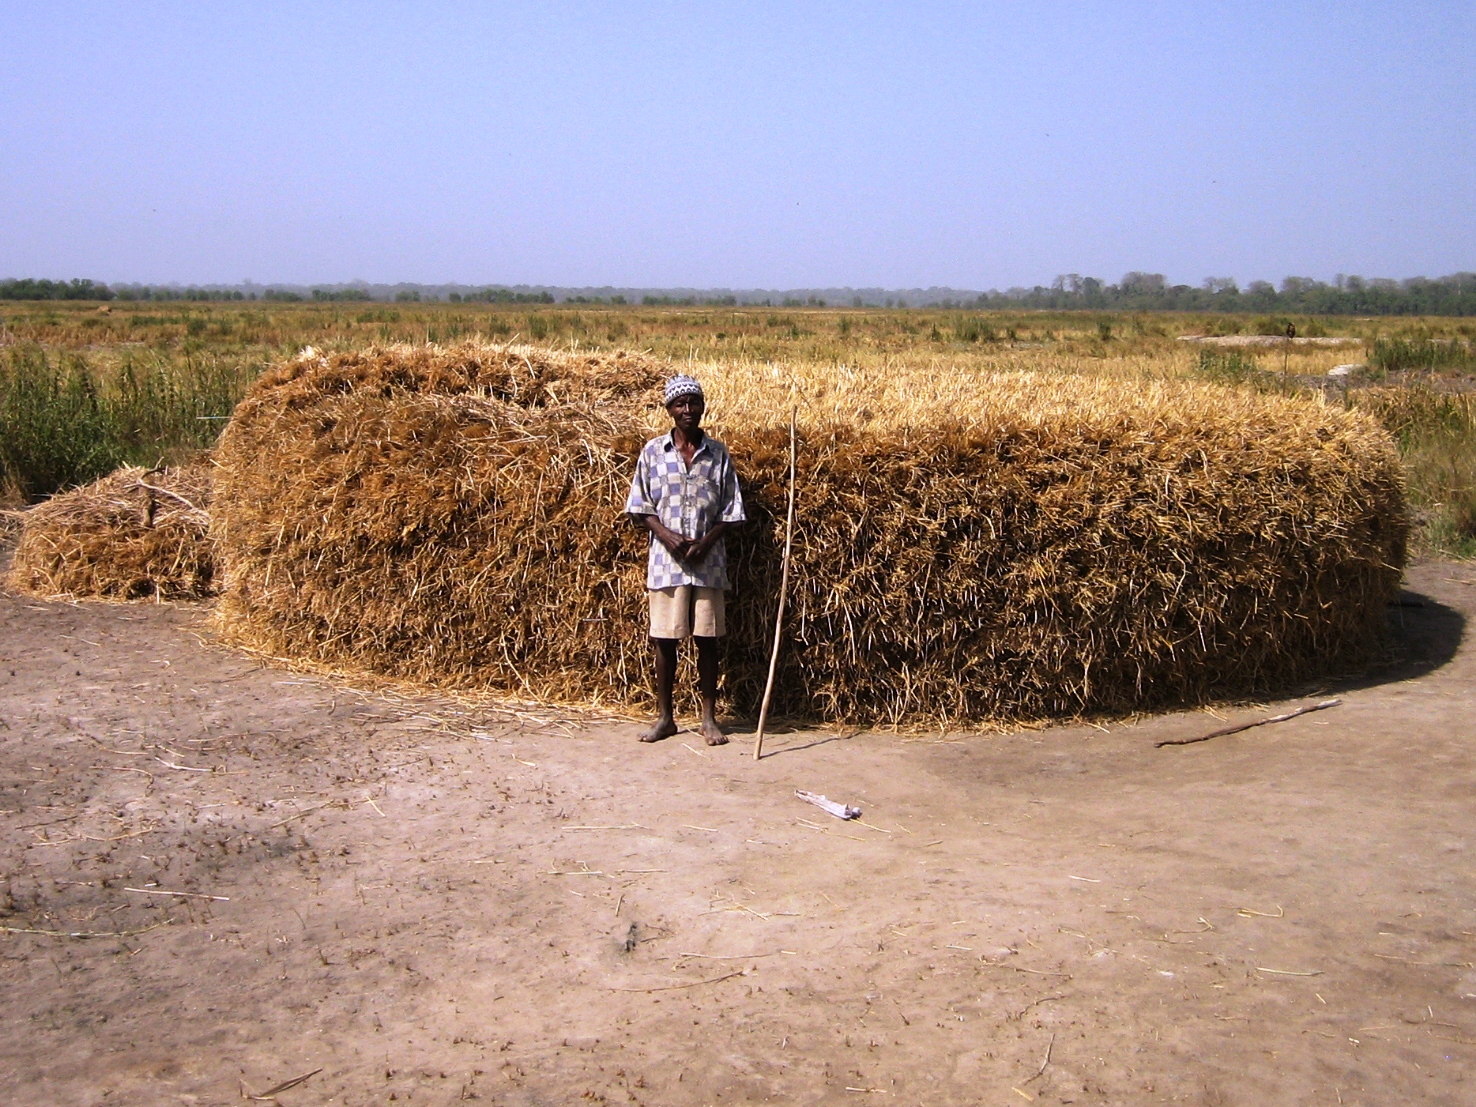 Domingos Embana, a rice farmer in front to his harvest, ready to start thrashing the rice  between the towns of Bafata and Bissau, Guinea Bissau, 26 January 2007